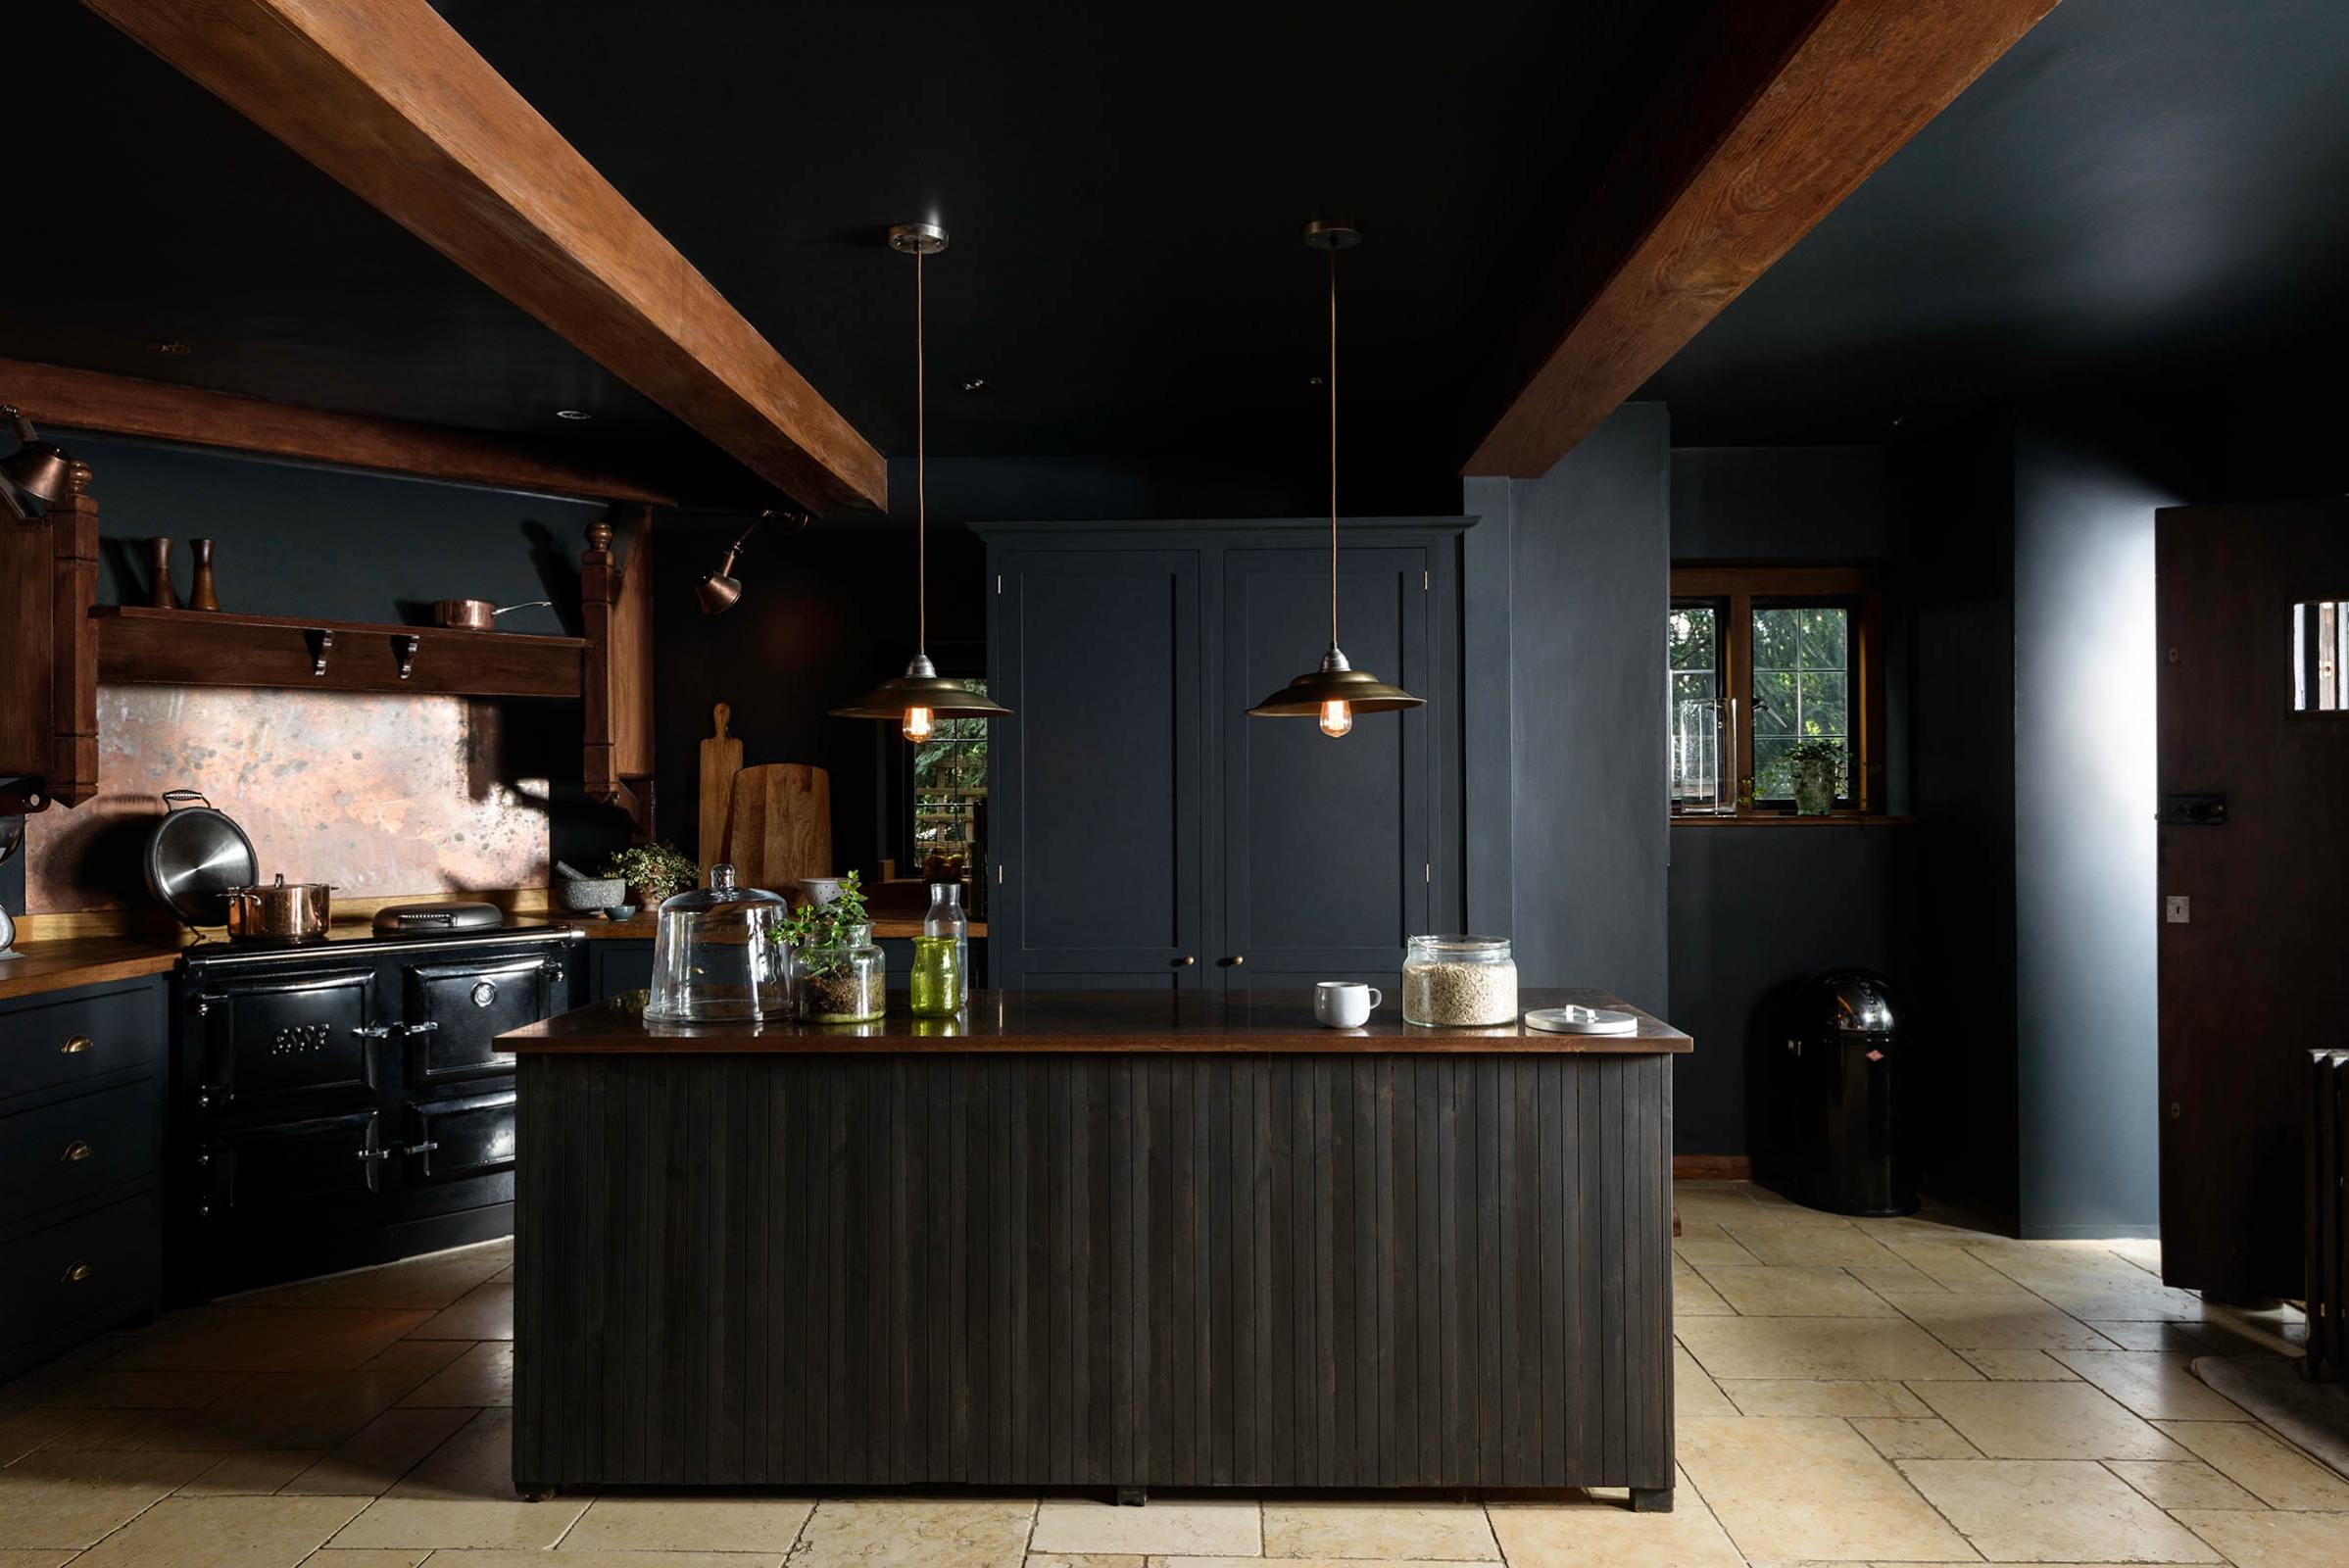 The Dark and Moody Petersham Kitchen